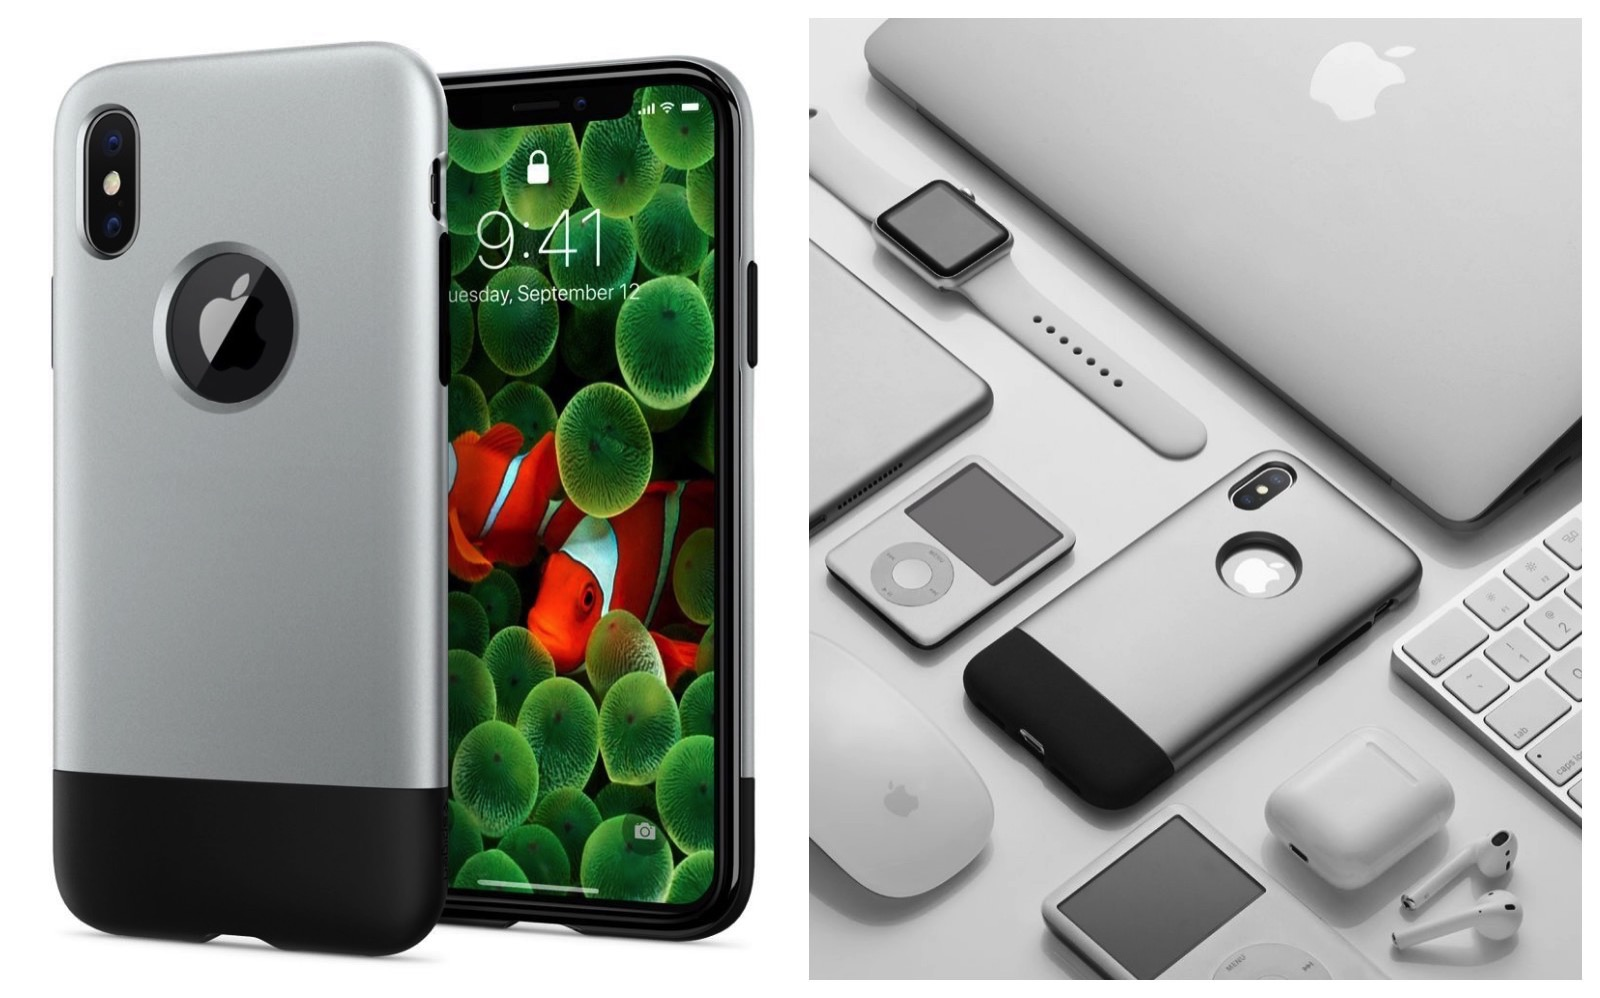 Spigen Original iPhone Design iPhoneX Case 1